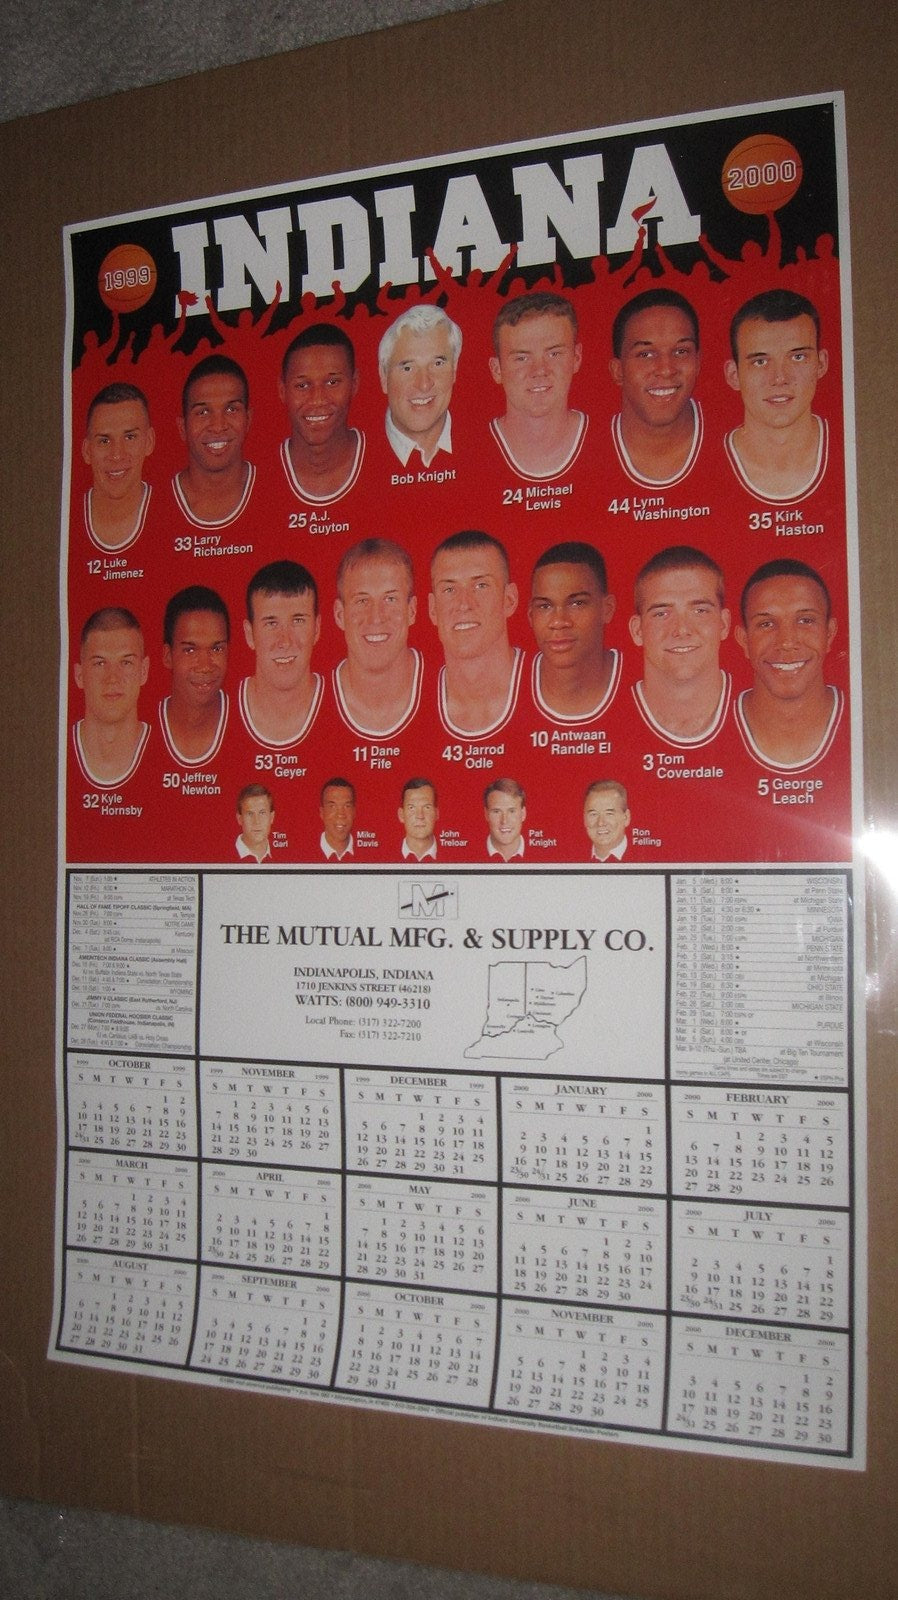 1999-2000 Indiana University Basketball Schedule Poster 19x28 - Vintage Indy Sports